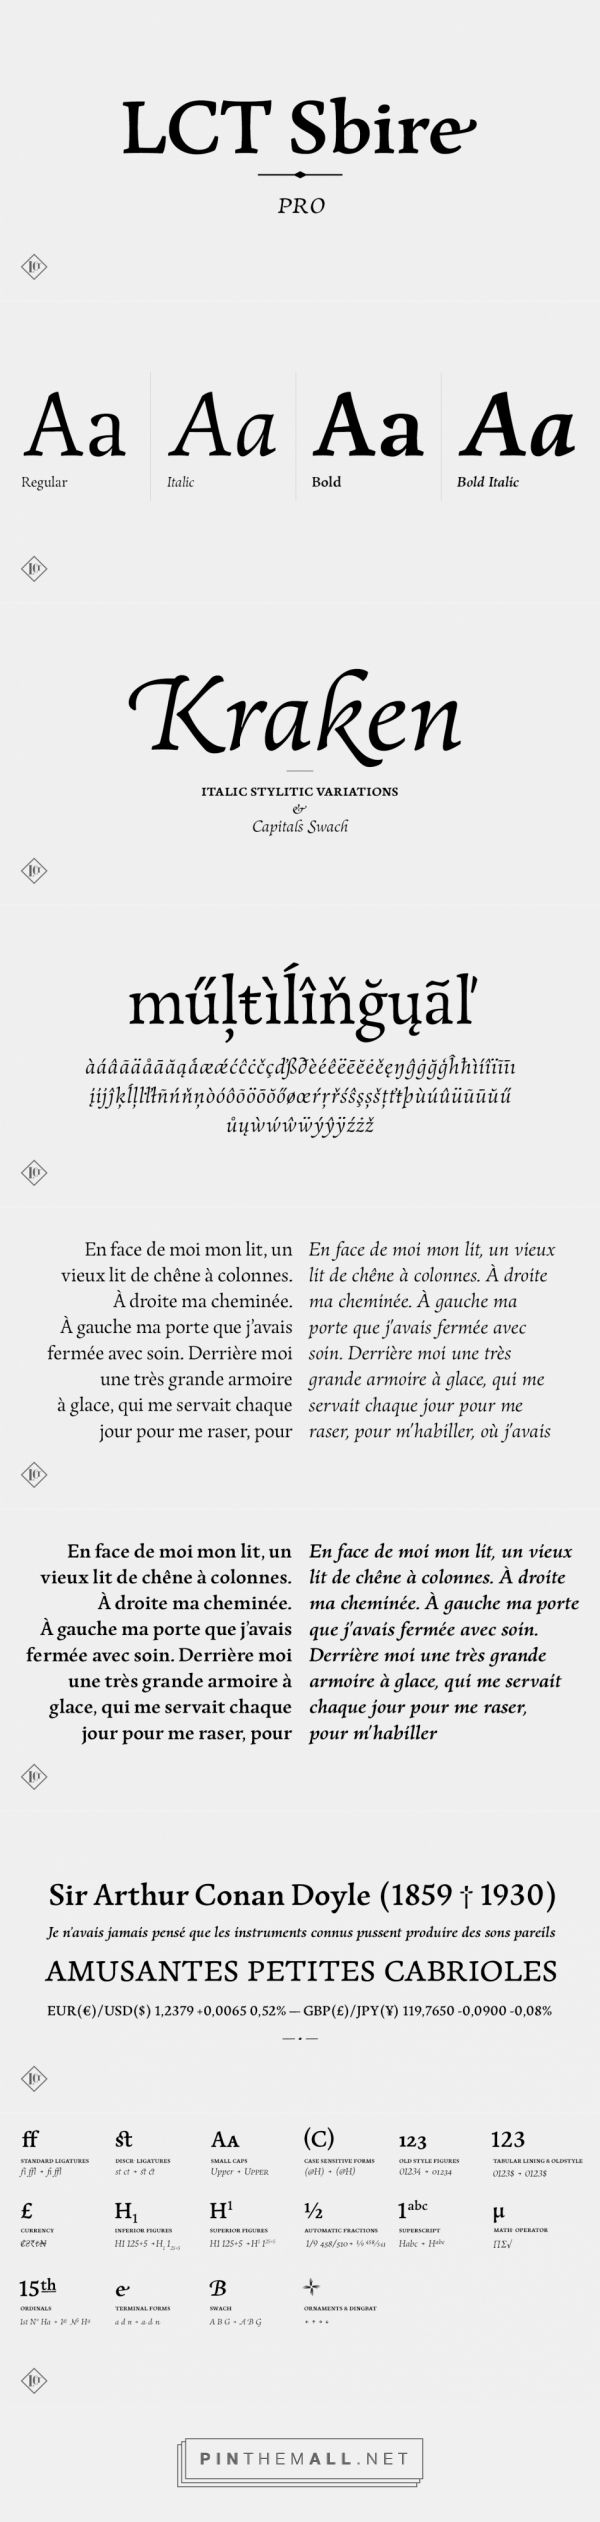 LCT Sbire Fonts by La Casse Typographique » Fontspring... - a grouped images picture - Pin Them All